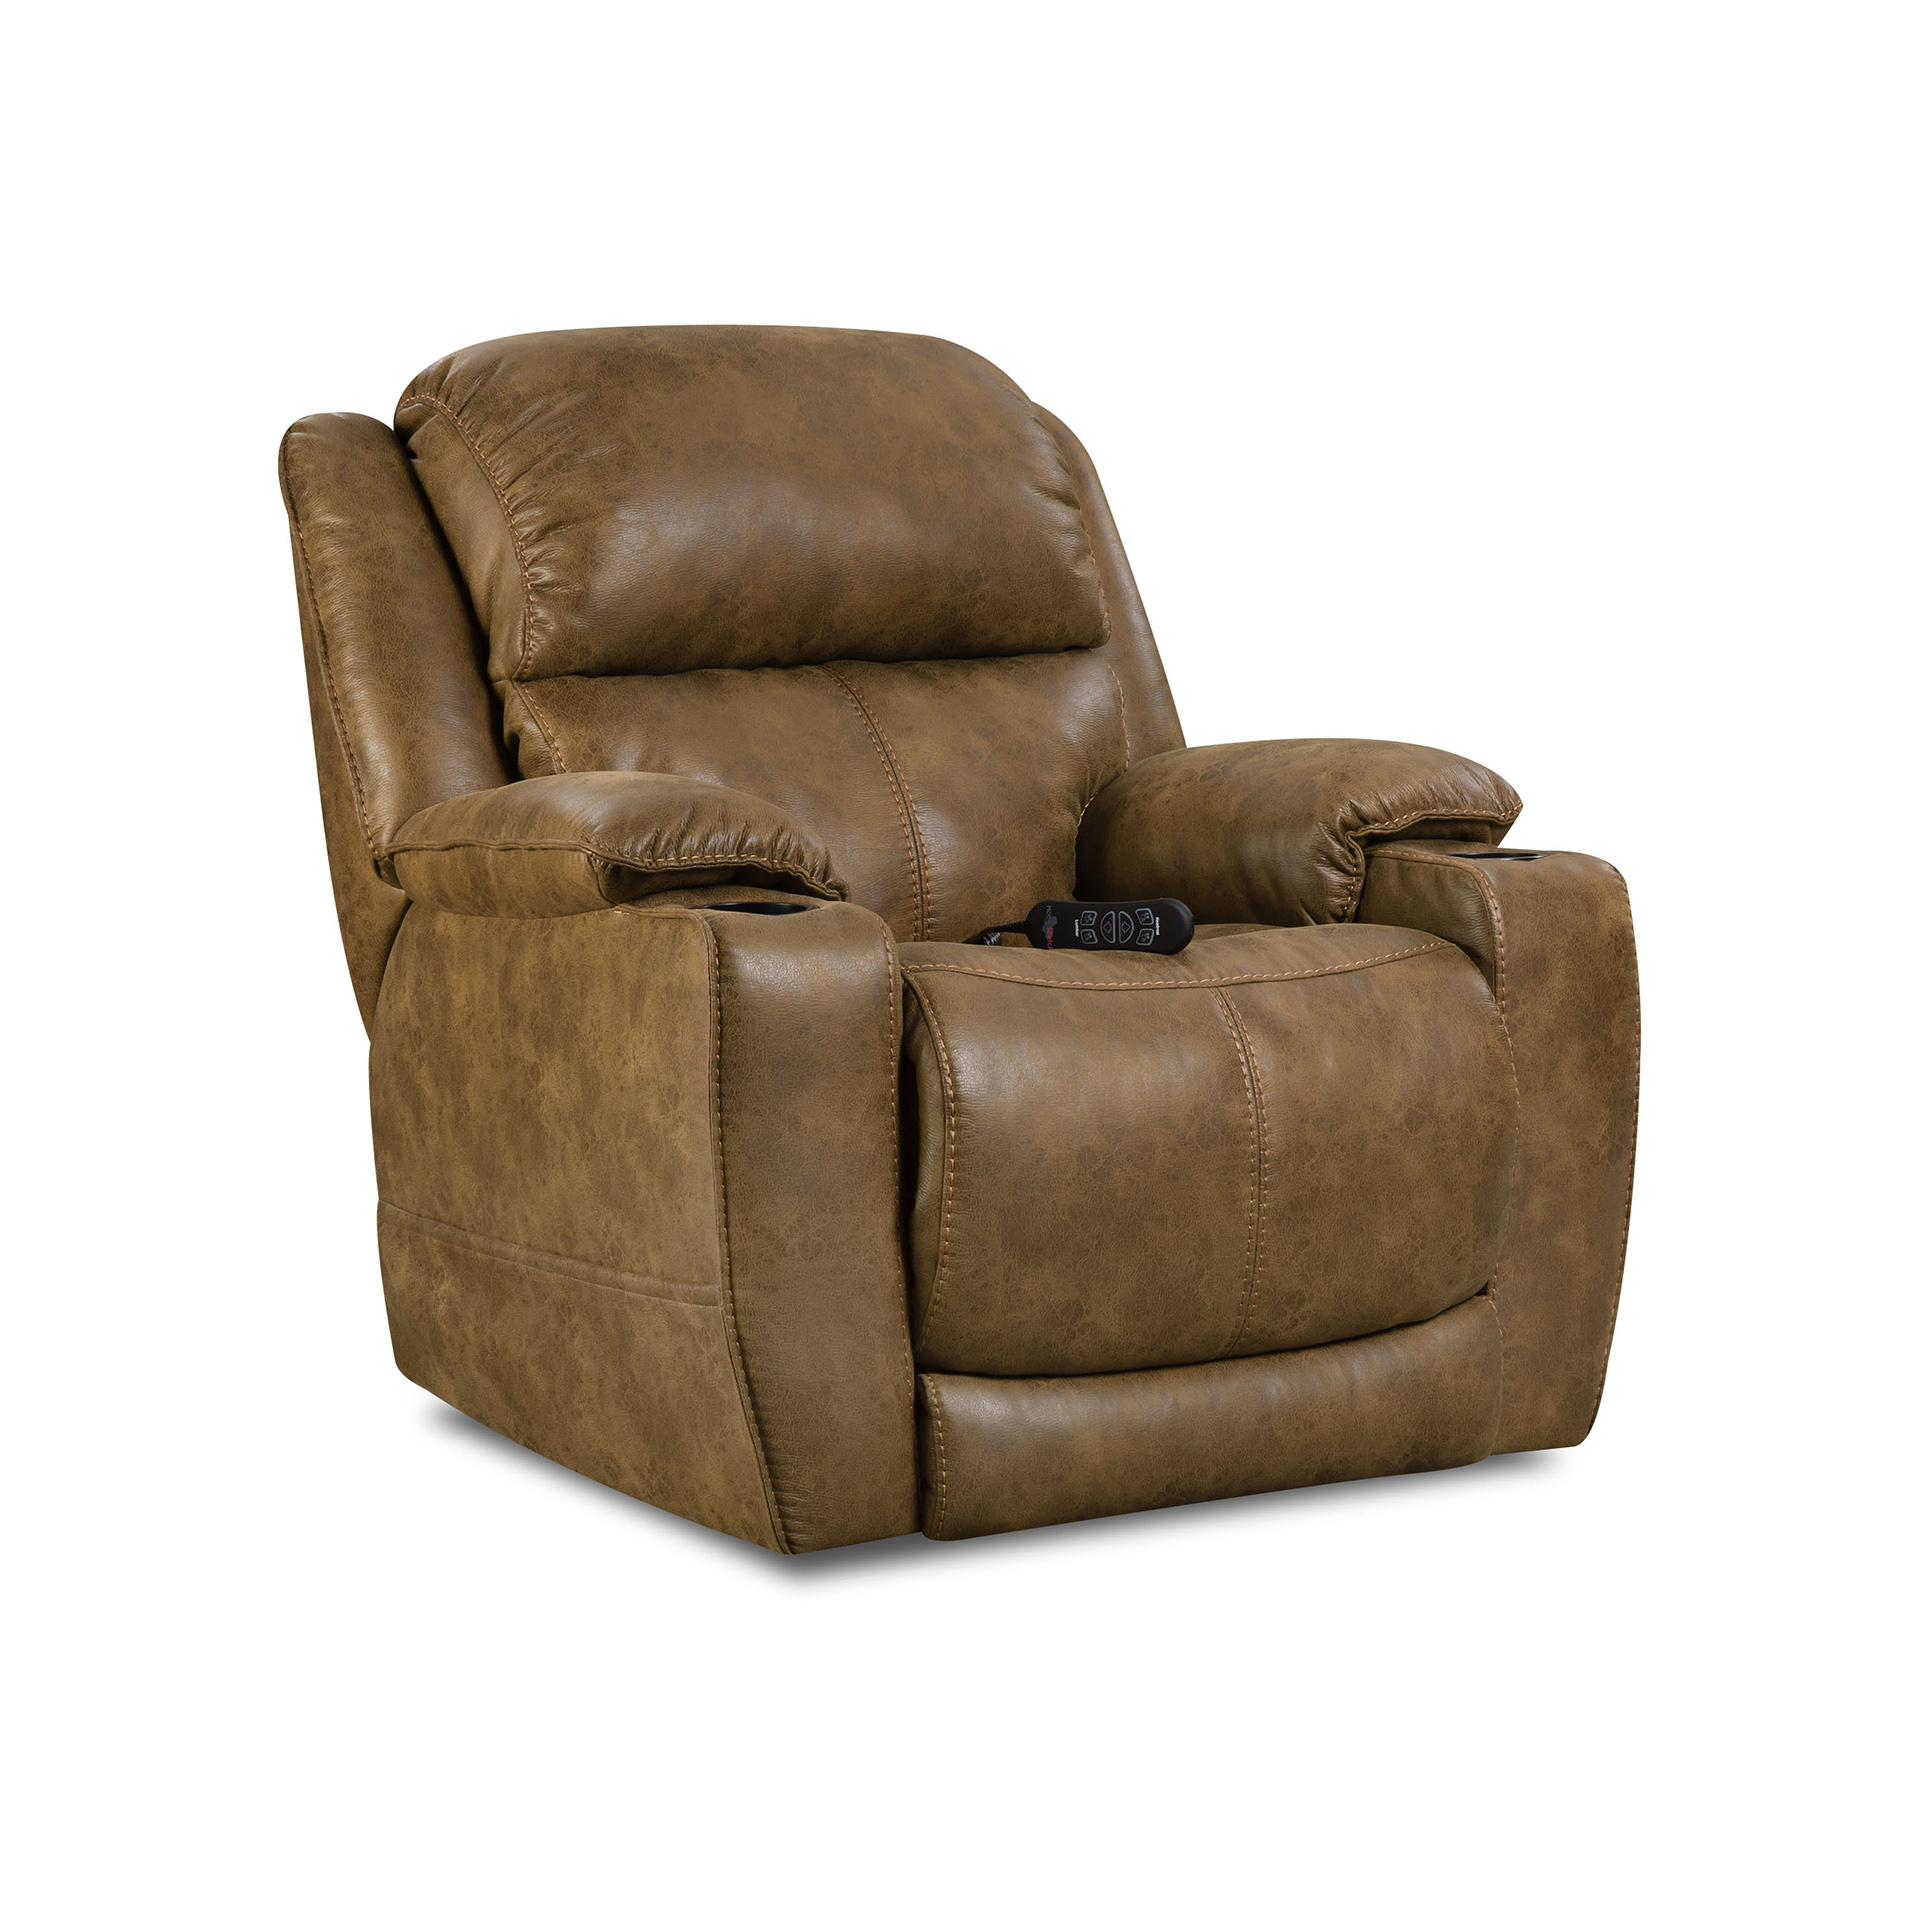 Warranty Information Home Theater Recliner Homestretch